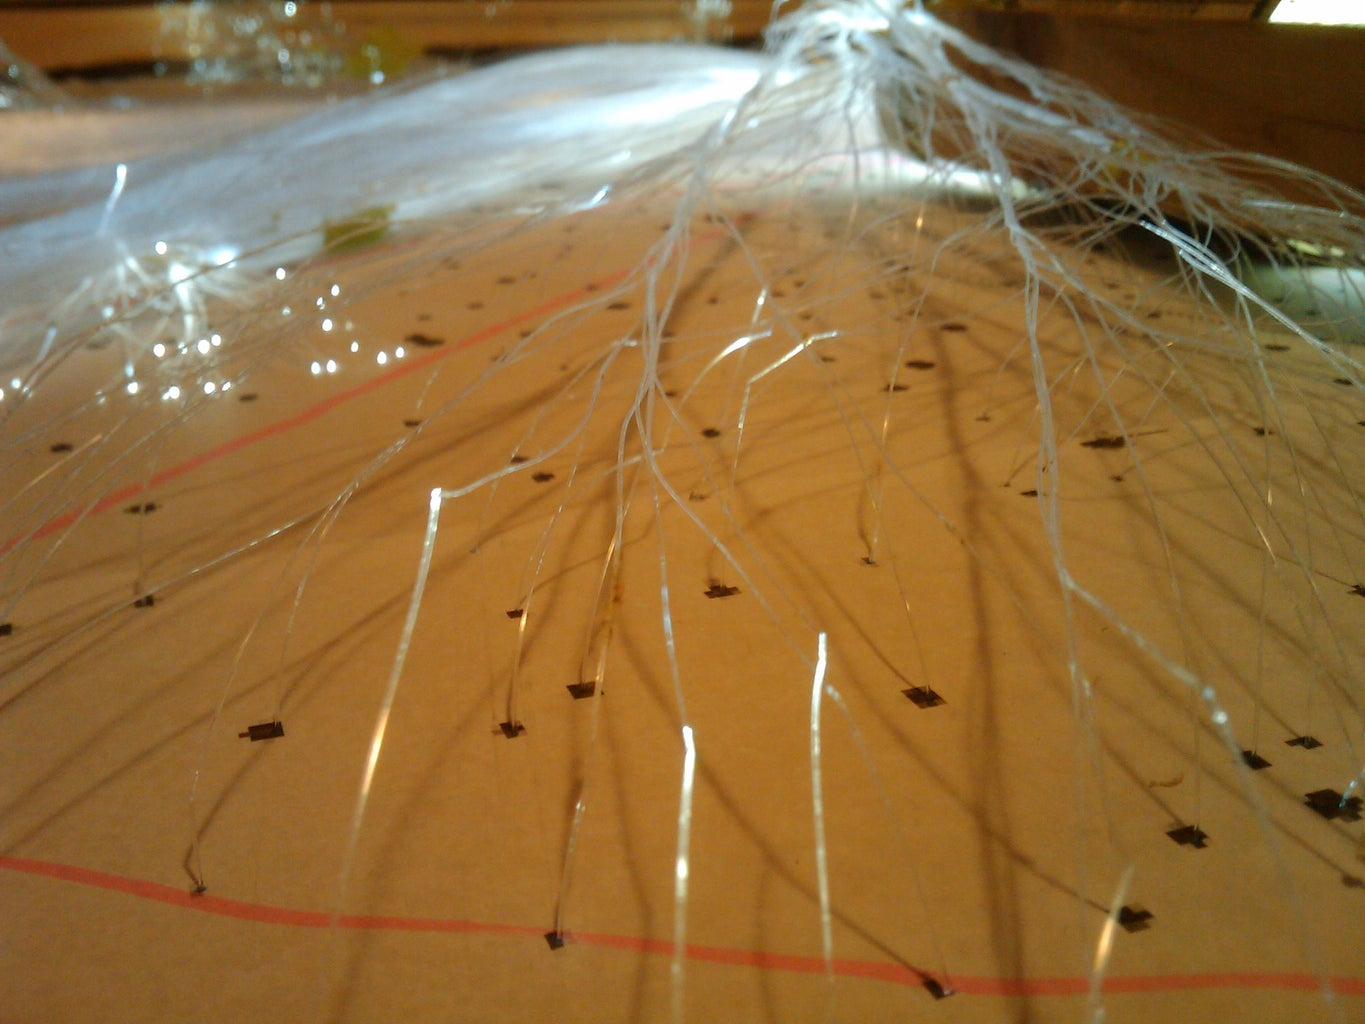 Poking Through and Gluing the Fibers